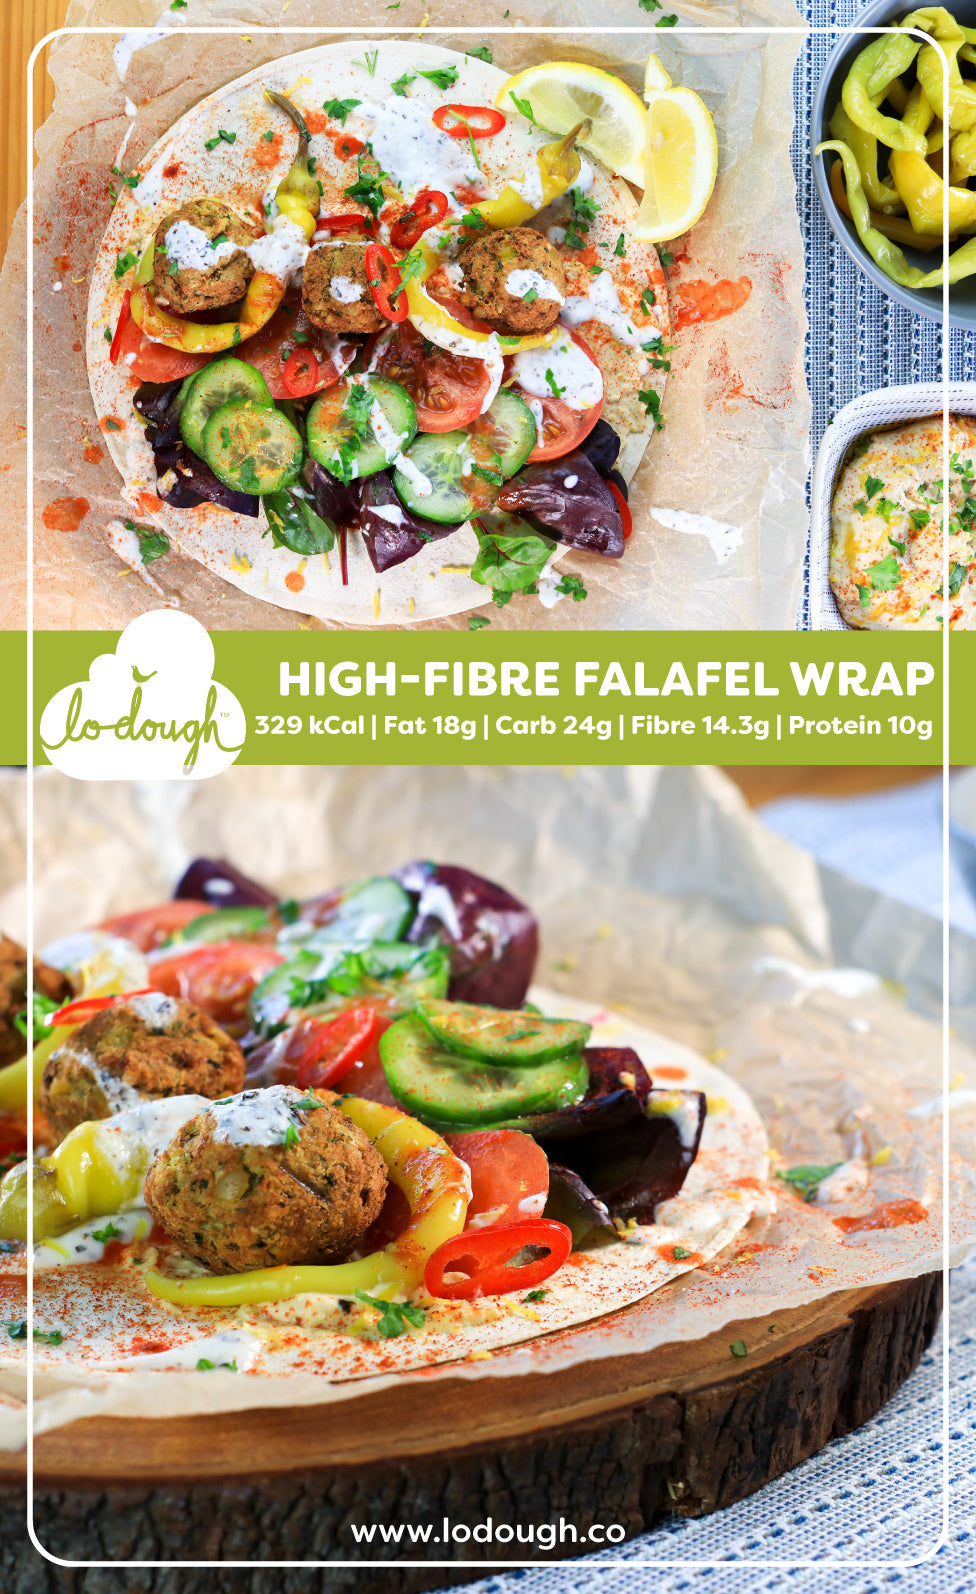 High Fibre Falafel Wrap